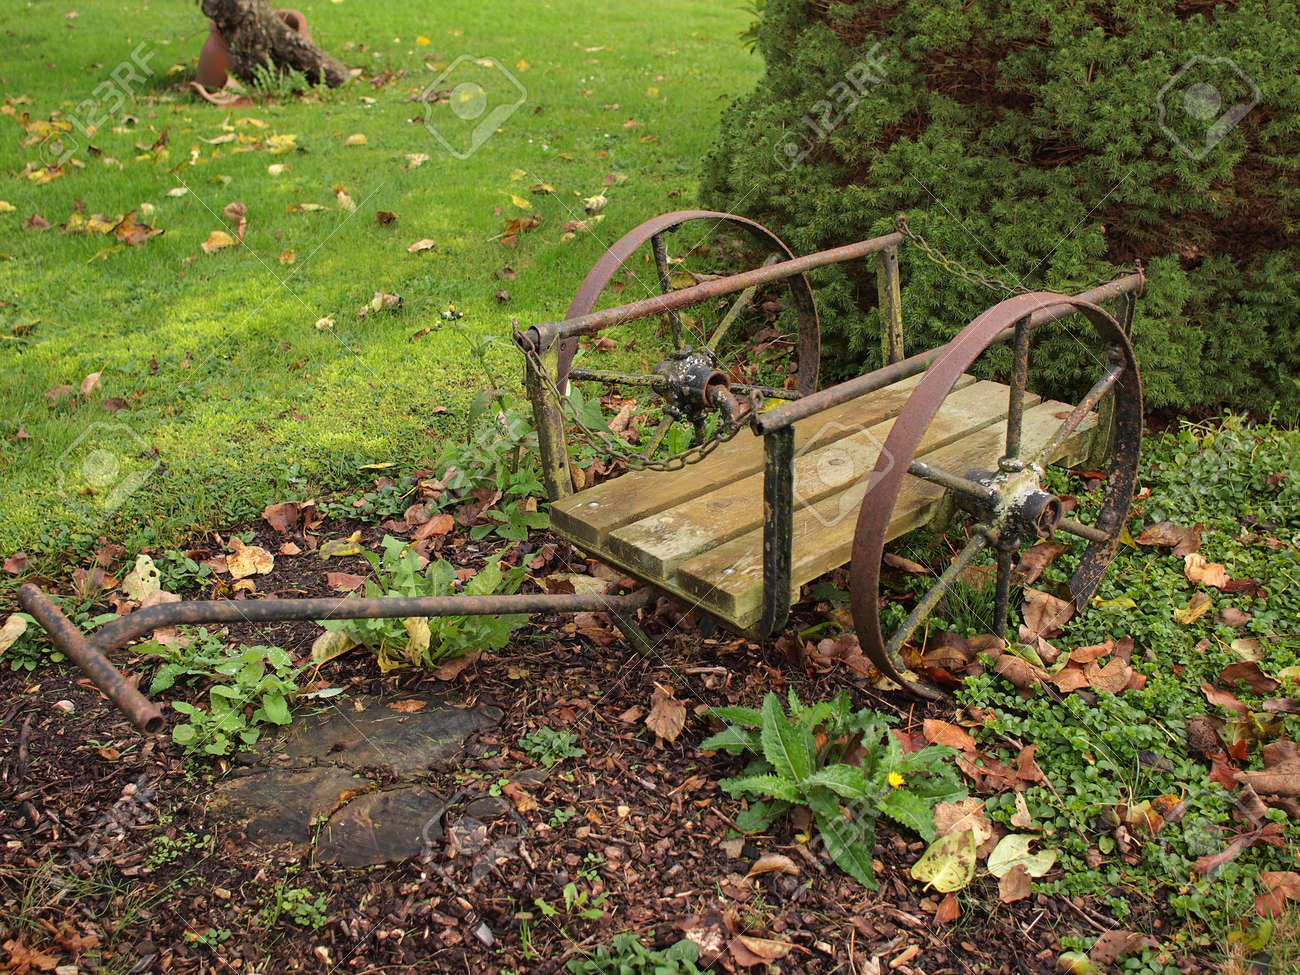 Vintage Cast Iron Garden Decor Old Wagon Stock Photo, Picture And ...